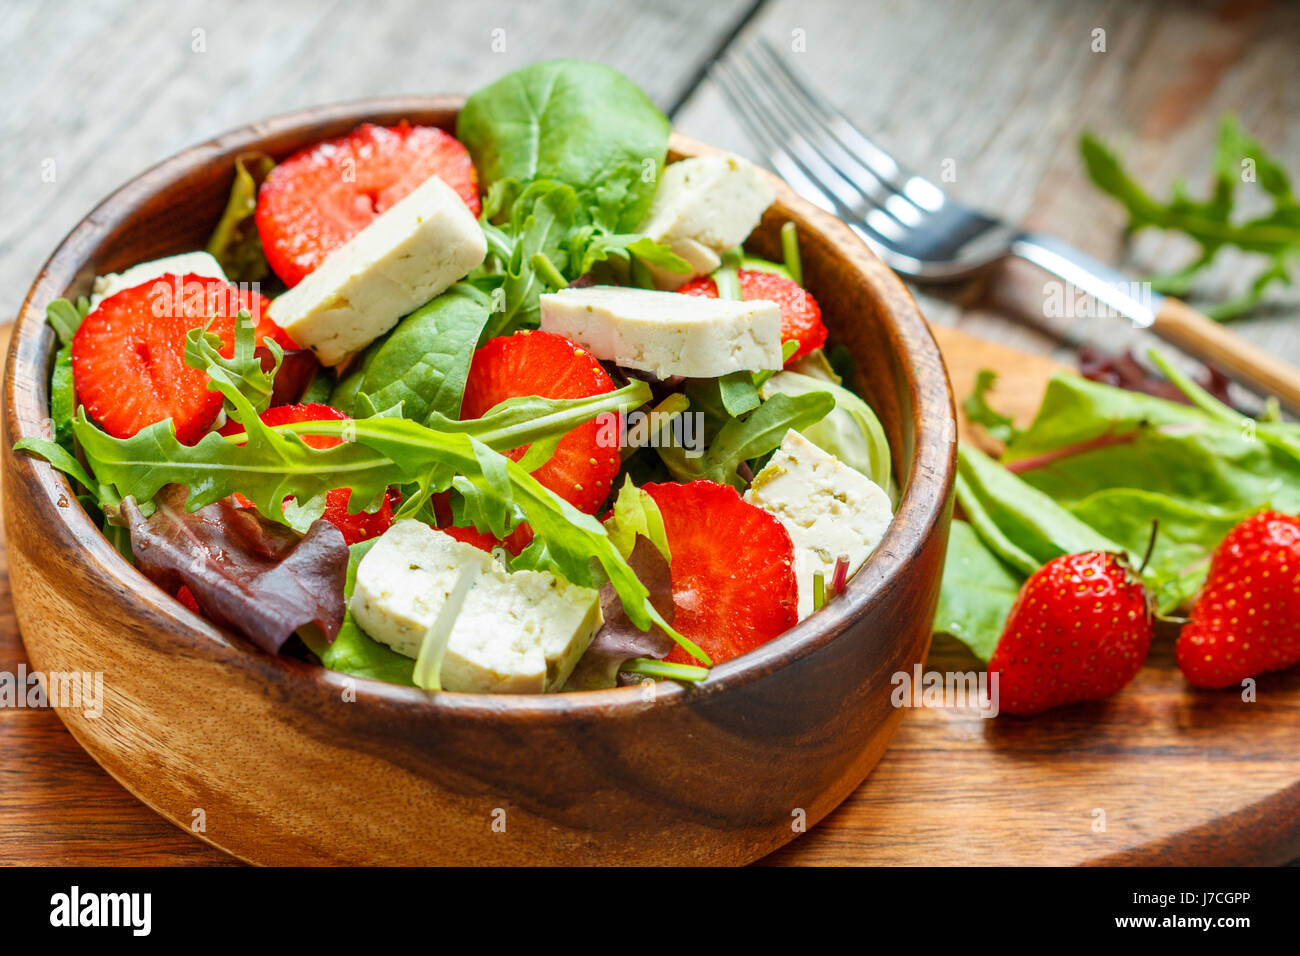 Vegan salad with tofu and strawberries. Love for a healthy vegan food concept - Stock Image